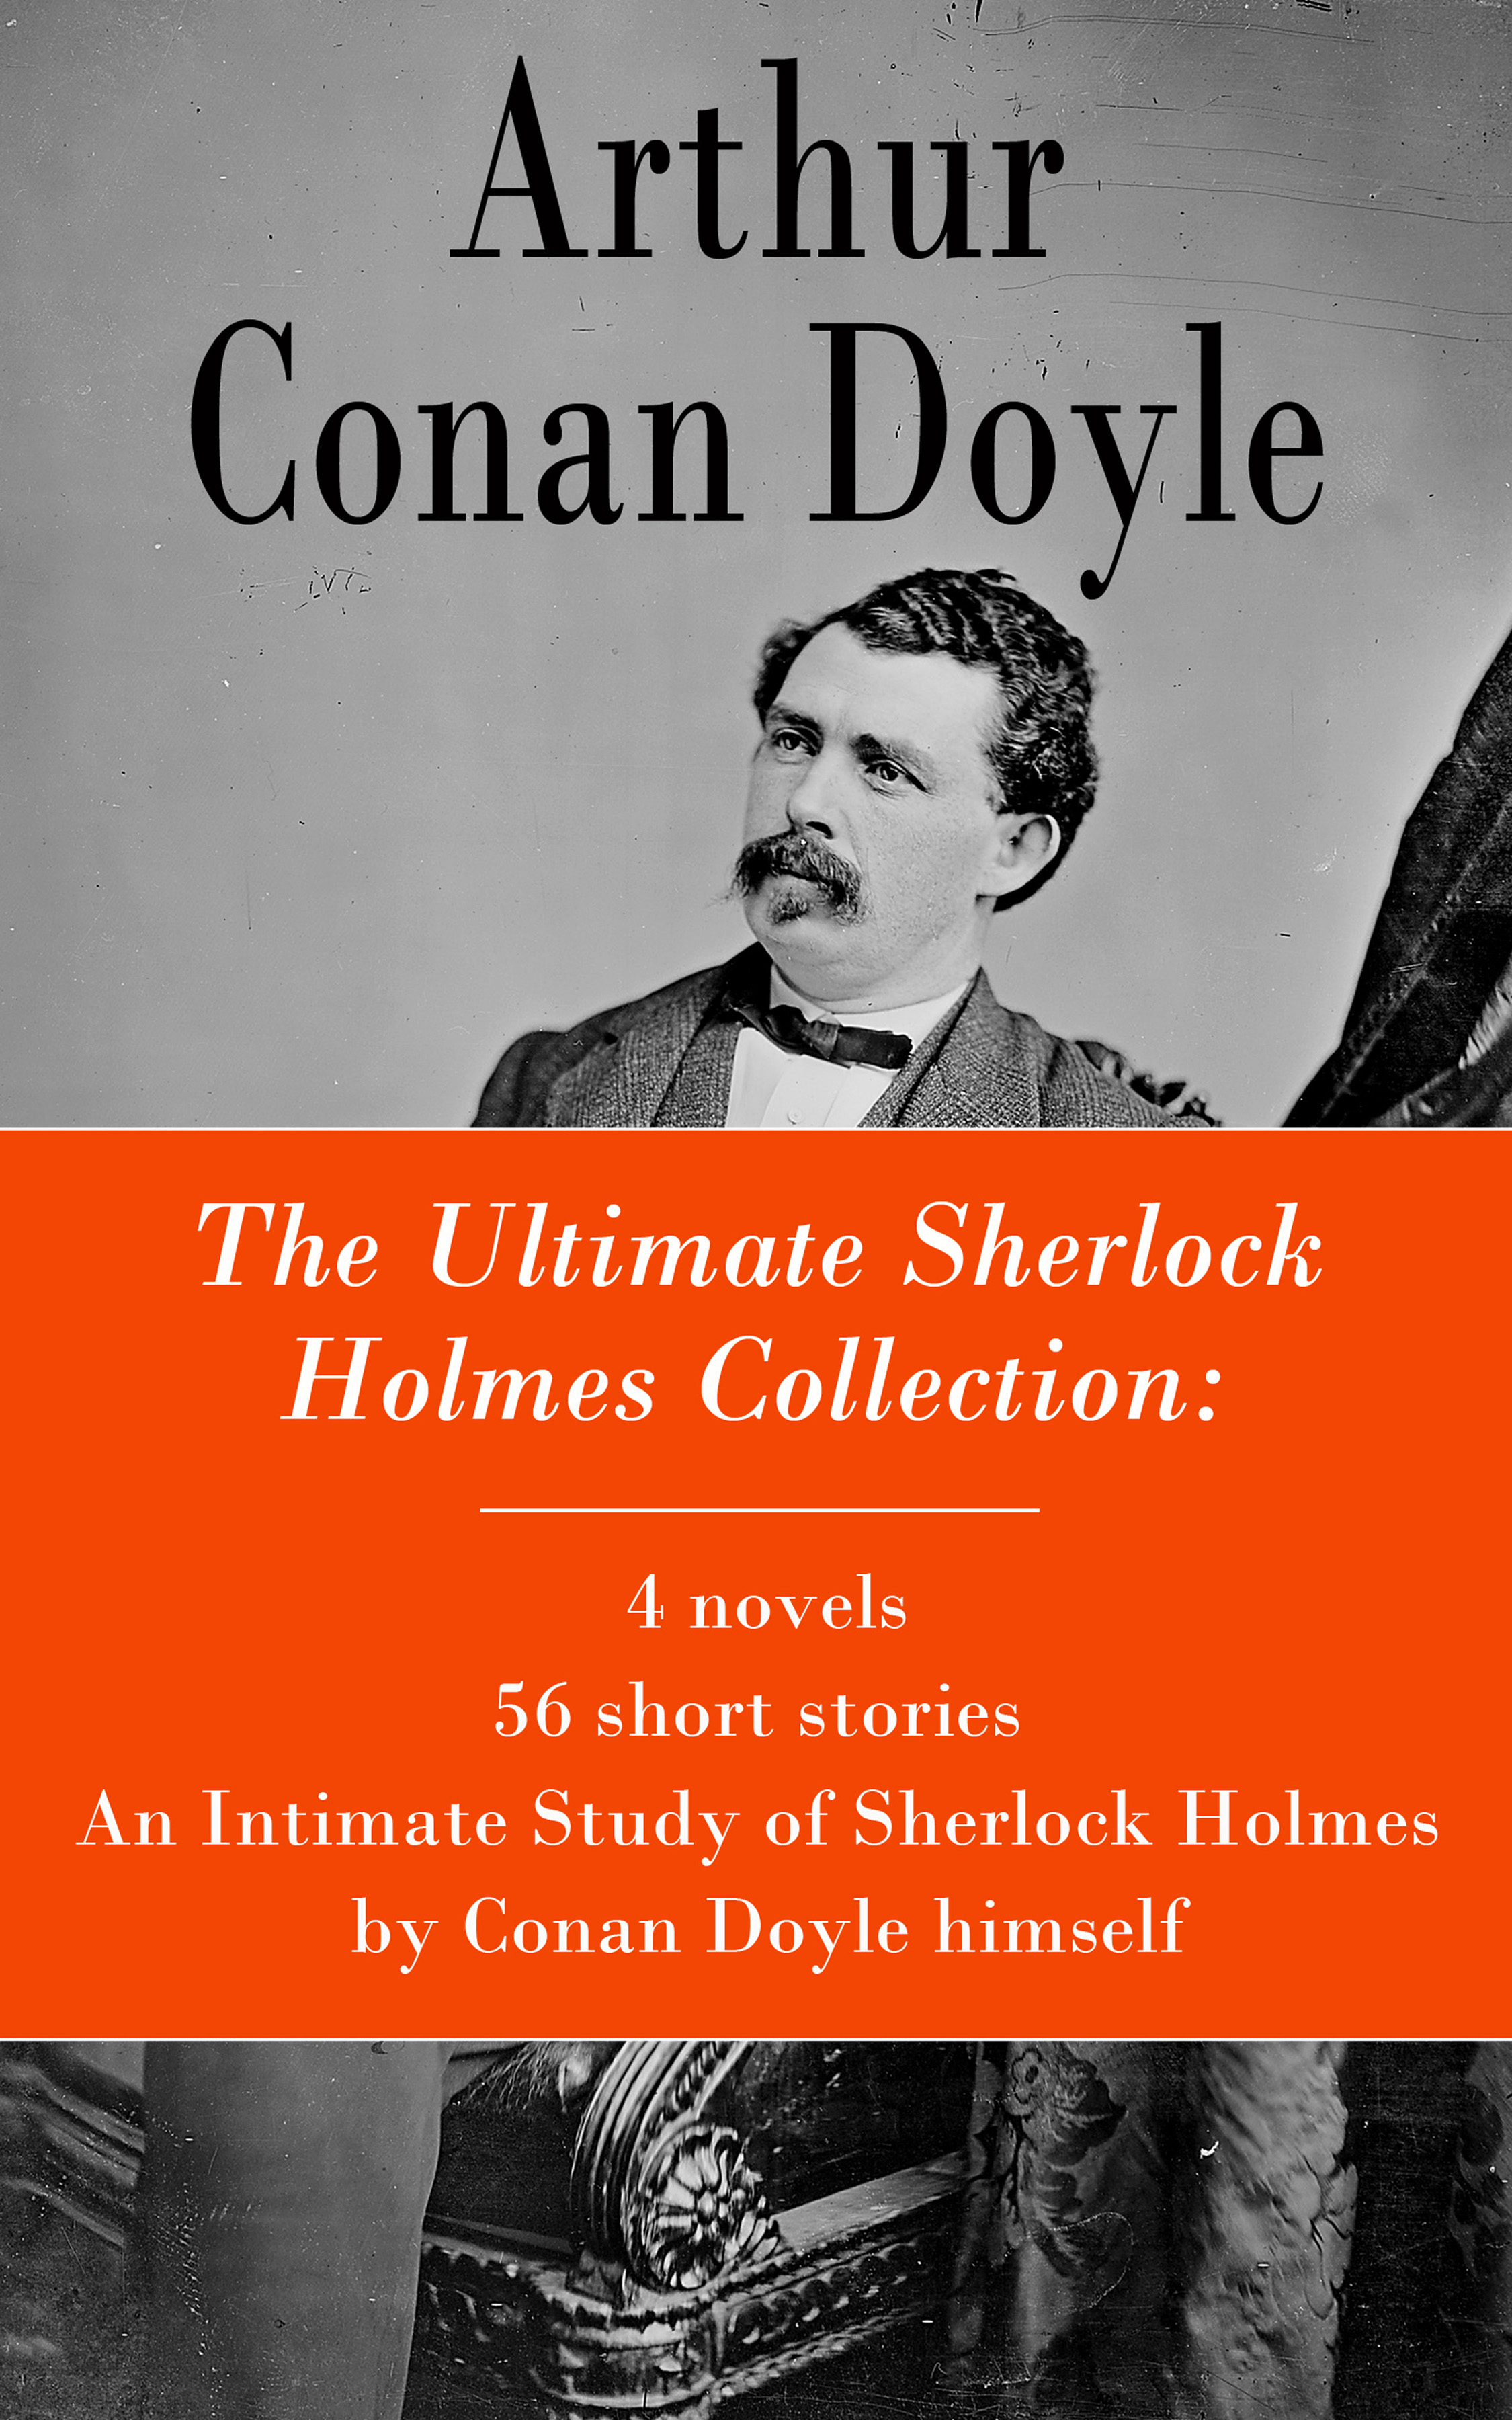 Arthur Conan Doyle The Ultimate Sherlock Holmes Collection: 4 novels + 56 short stories + An Intimate Study of Sherlock Holmes by Conan Doyle himself an economic study of crop financing by prathama bank